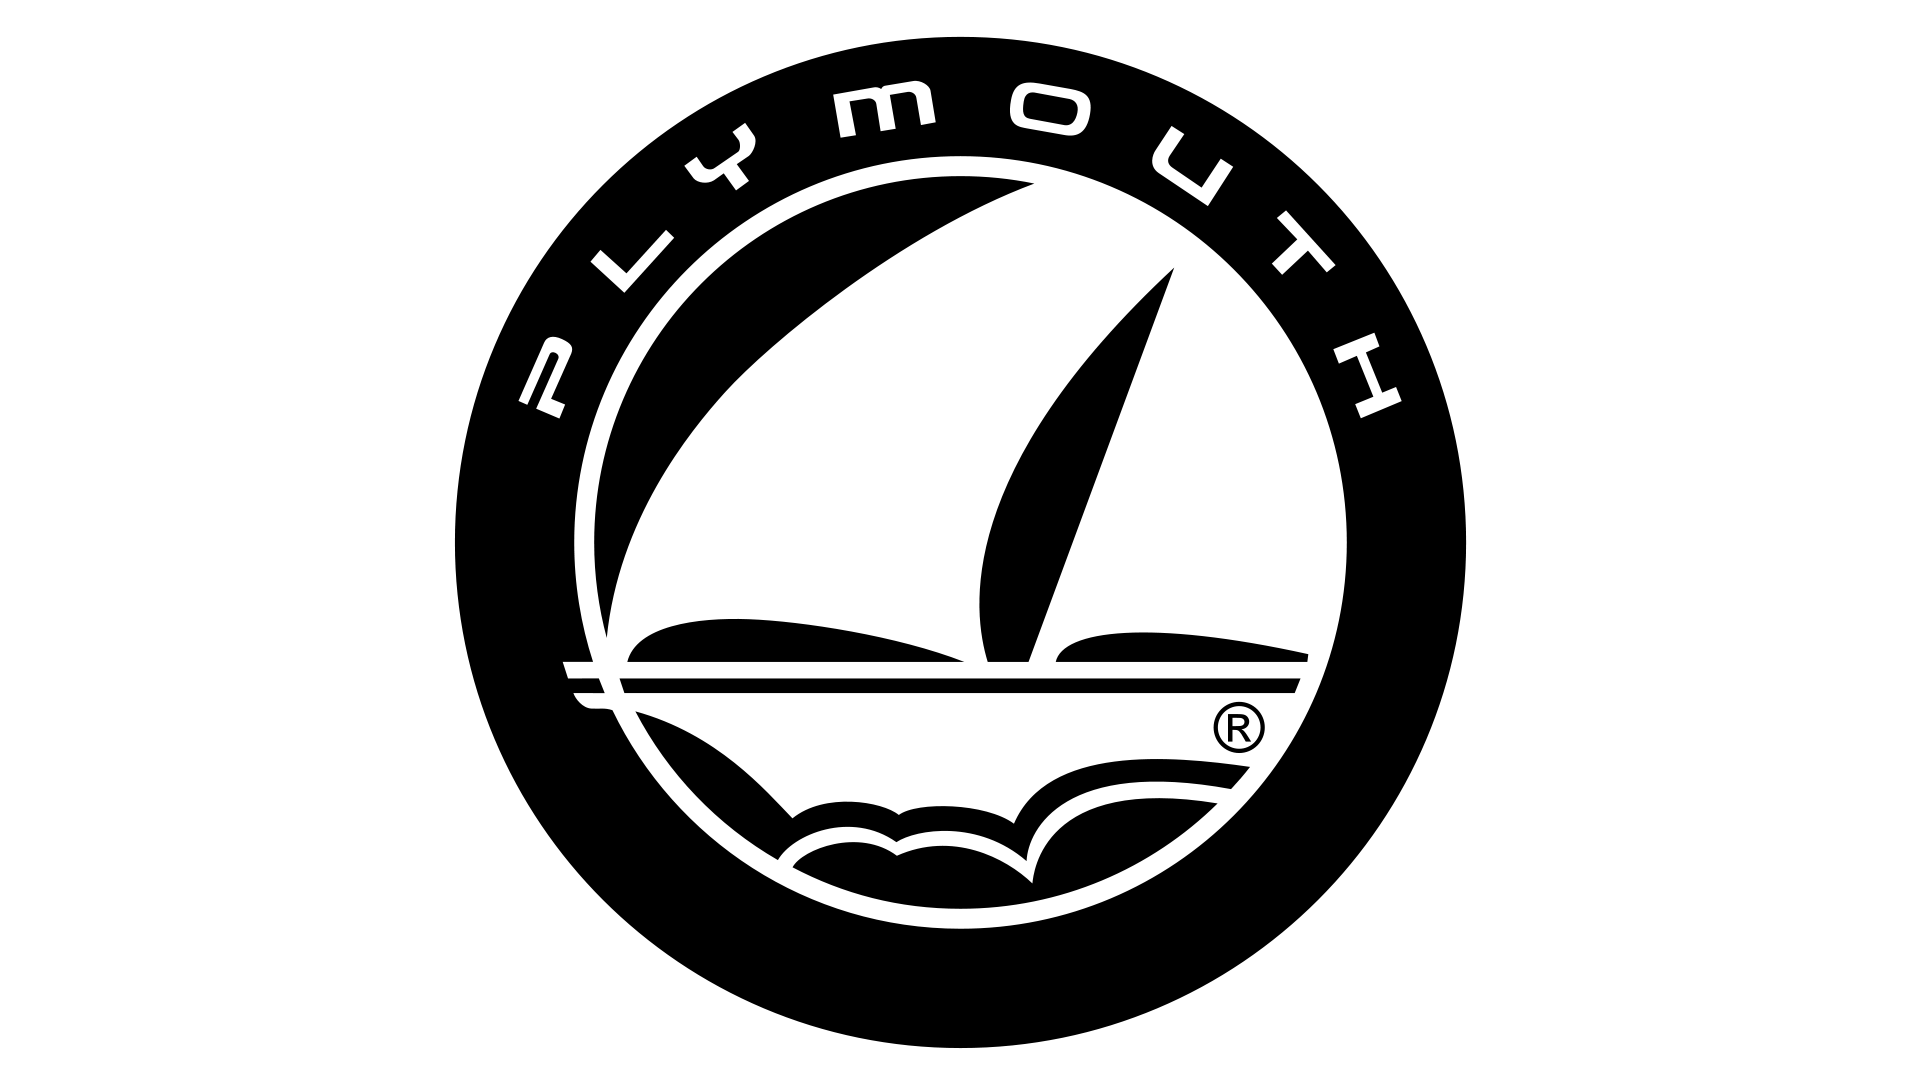 Plymouth logo world cars brands plymouth logo biocorpaavc Images